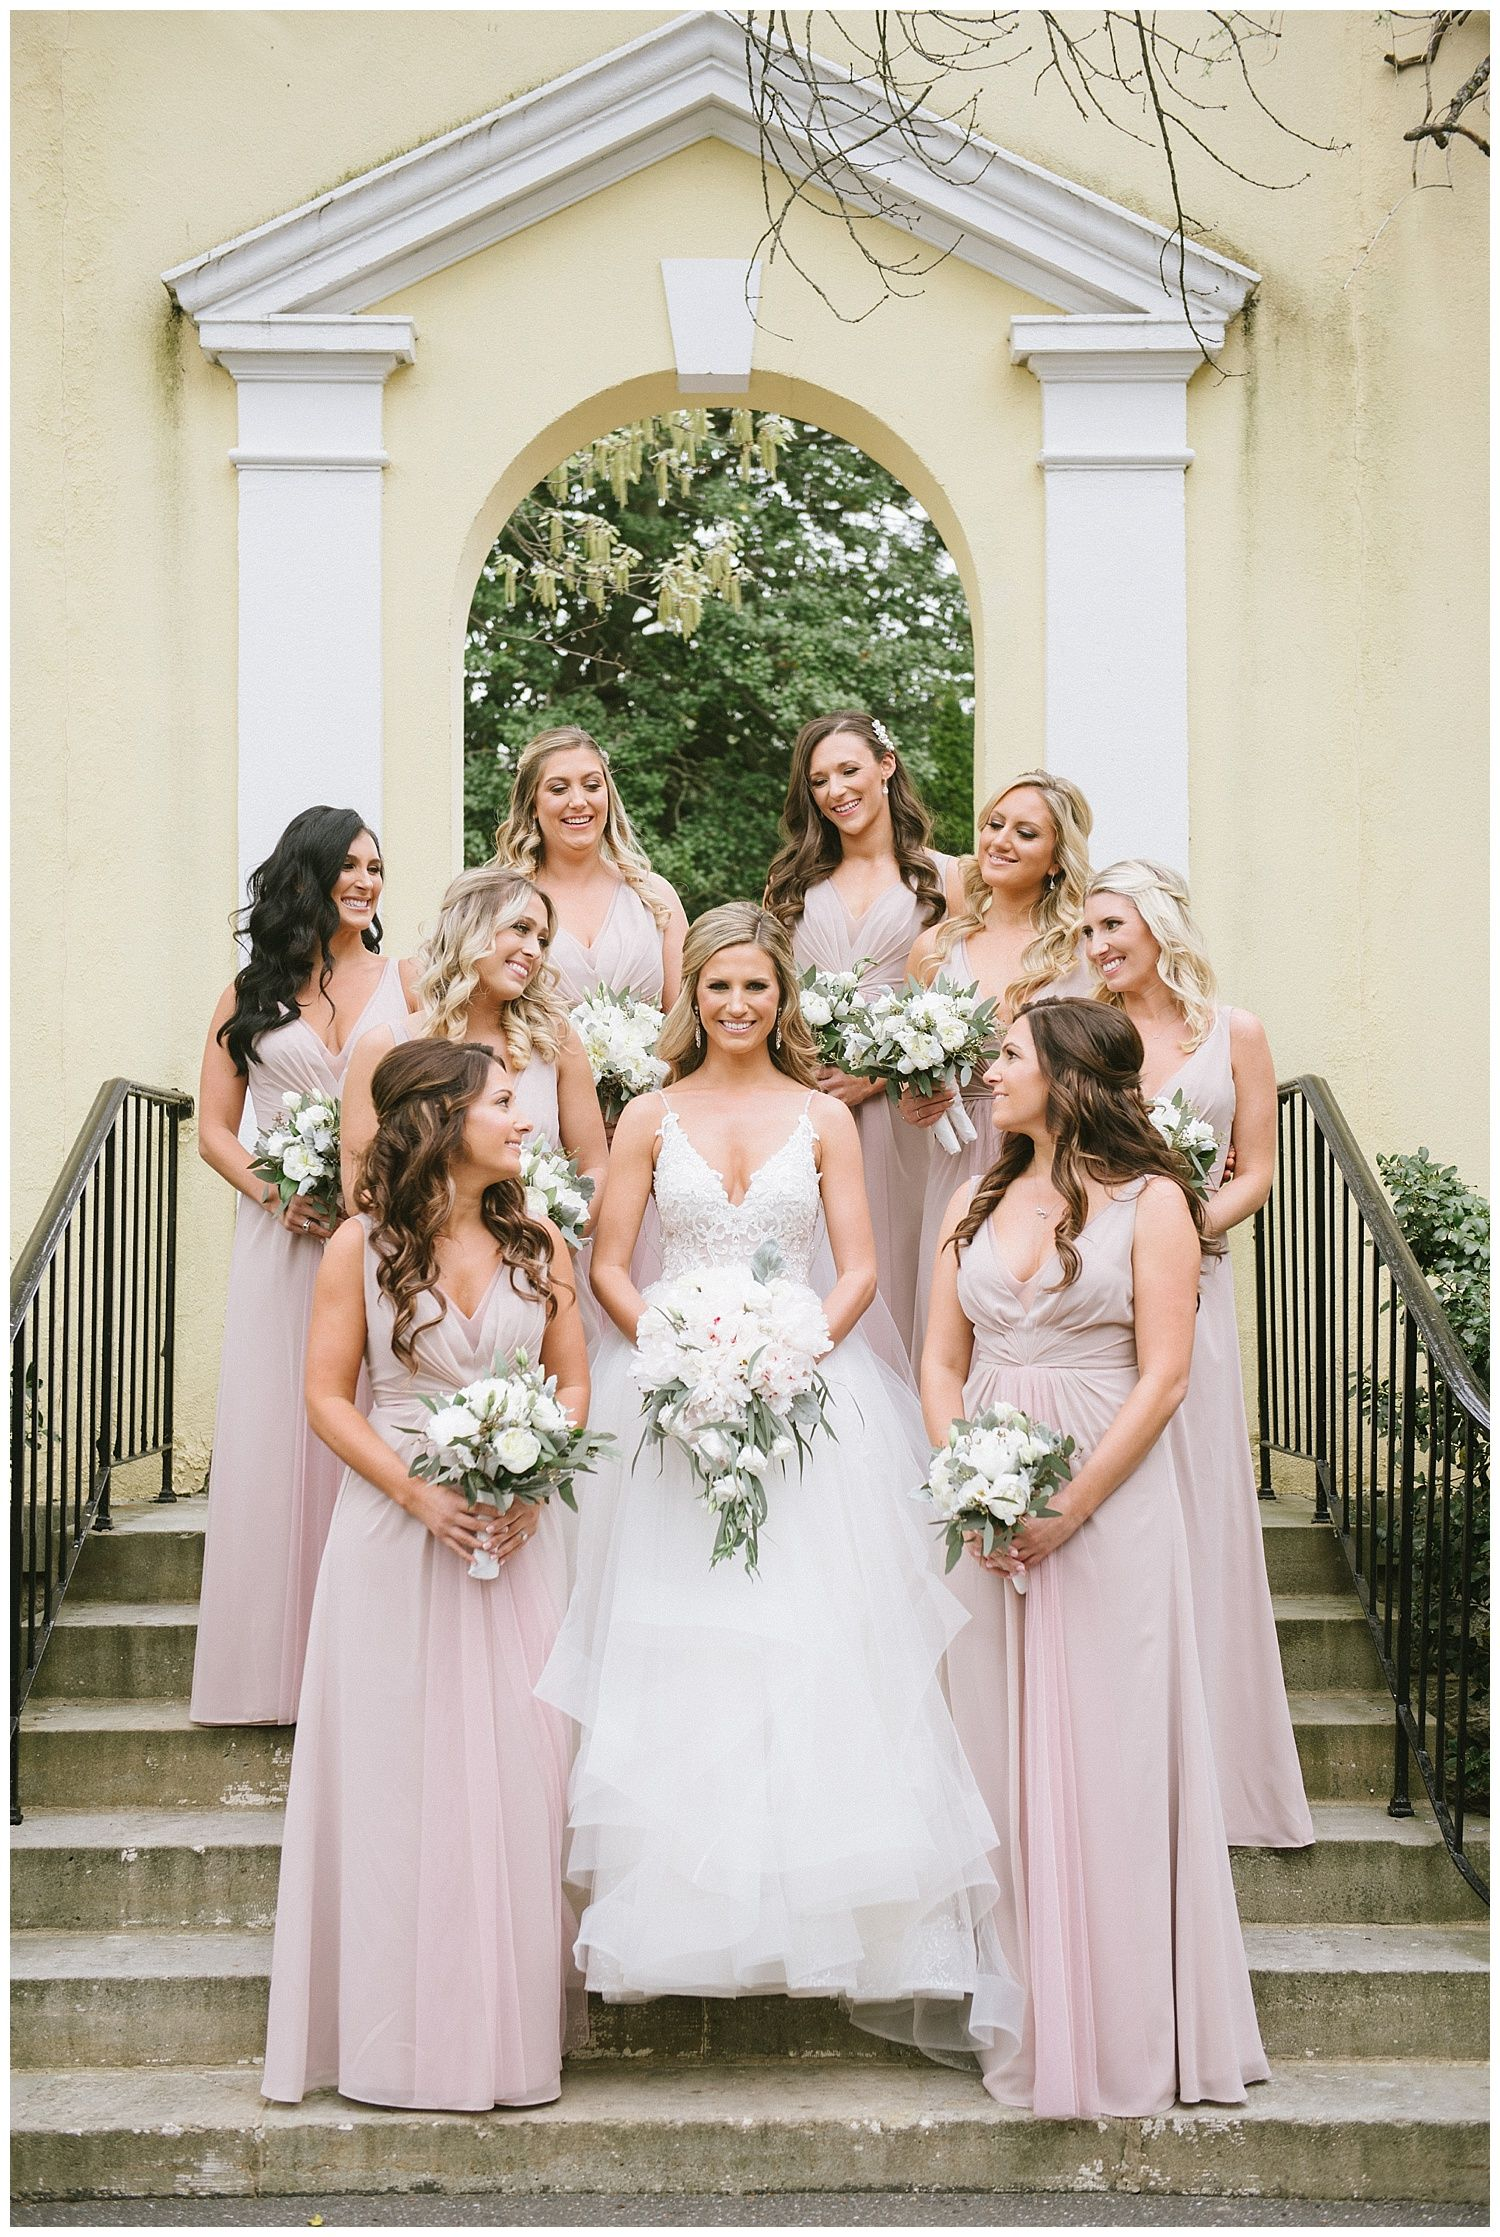 Fairytale Spring Wedding at The Mansion